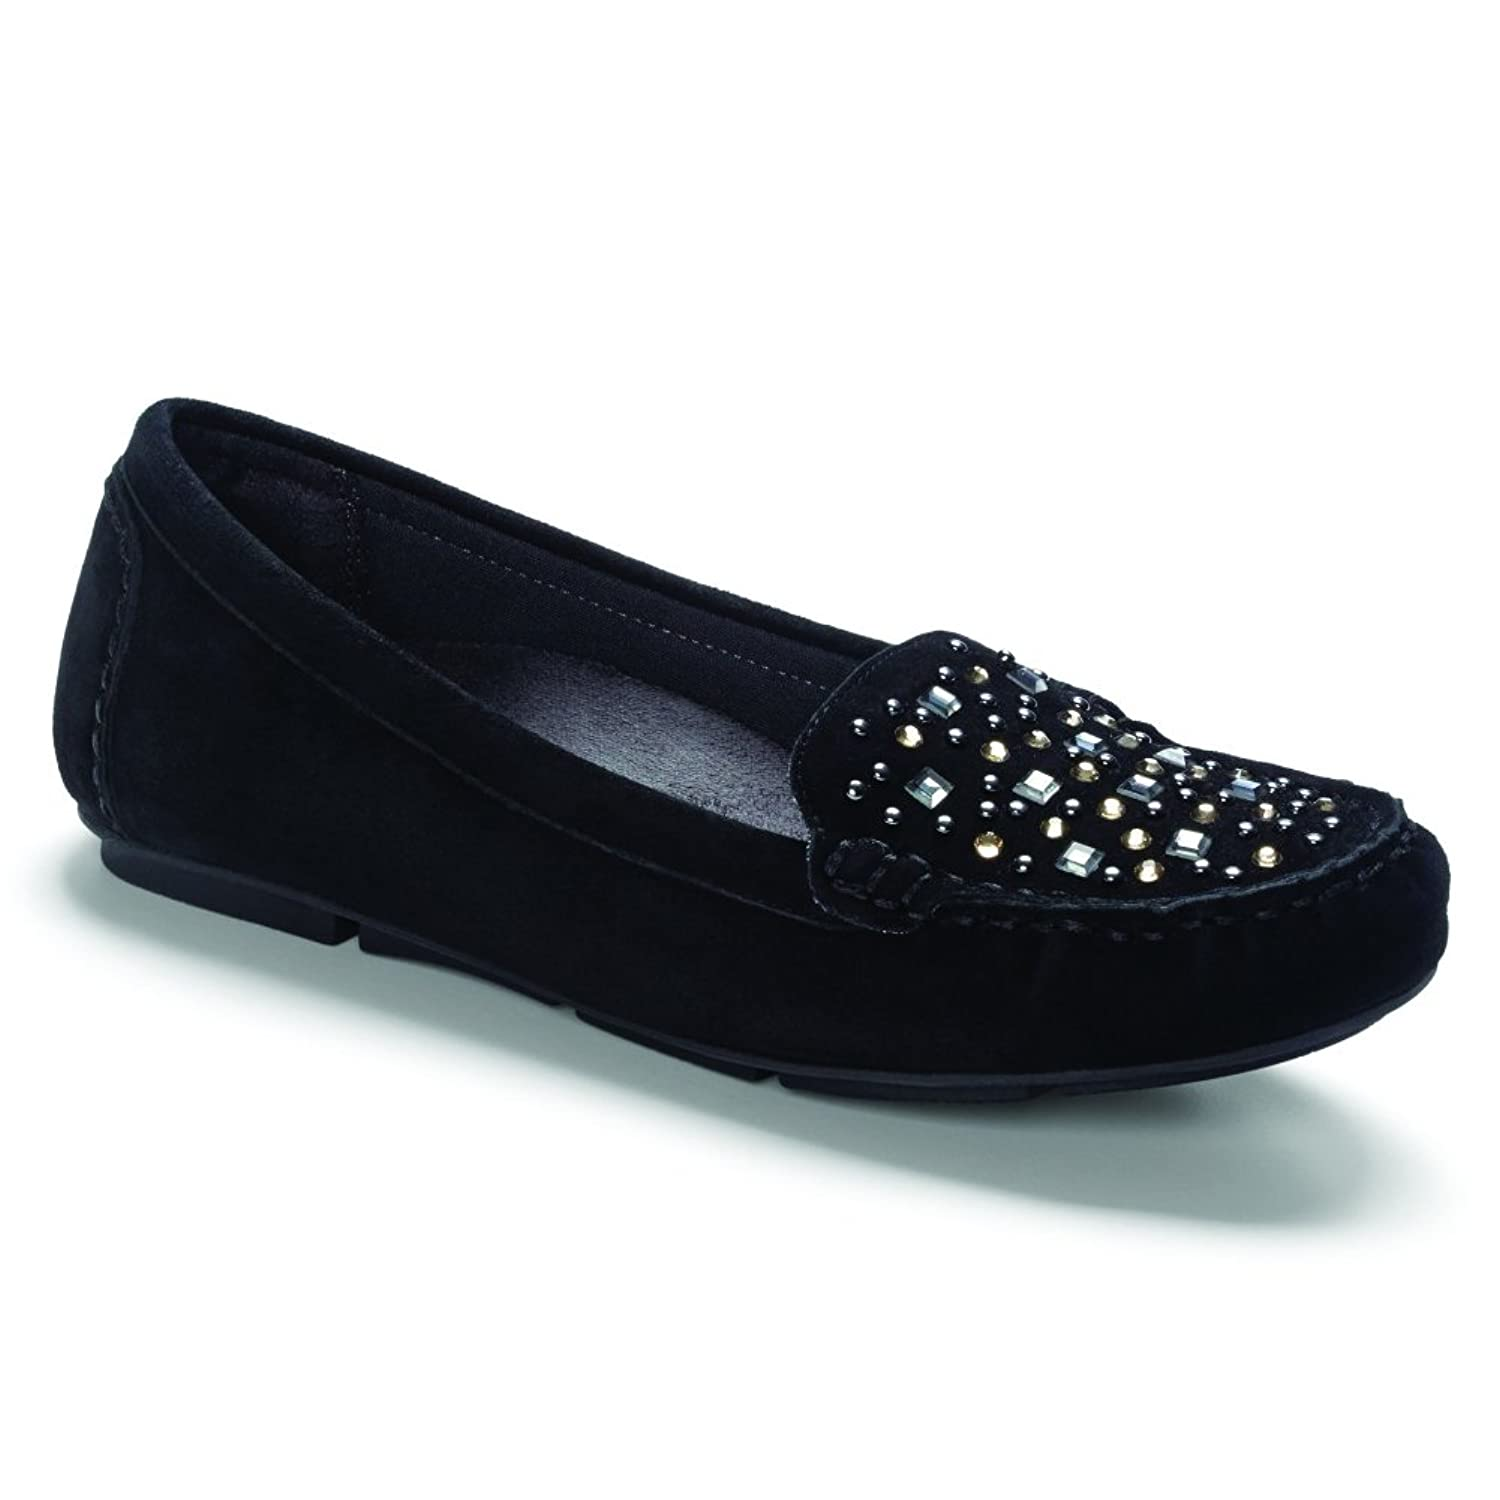 VIONIC Womens Chill Athens Loafer